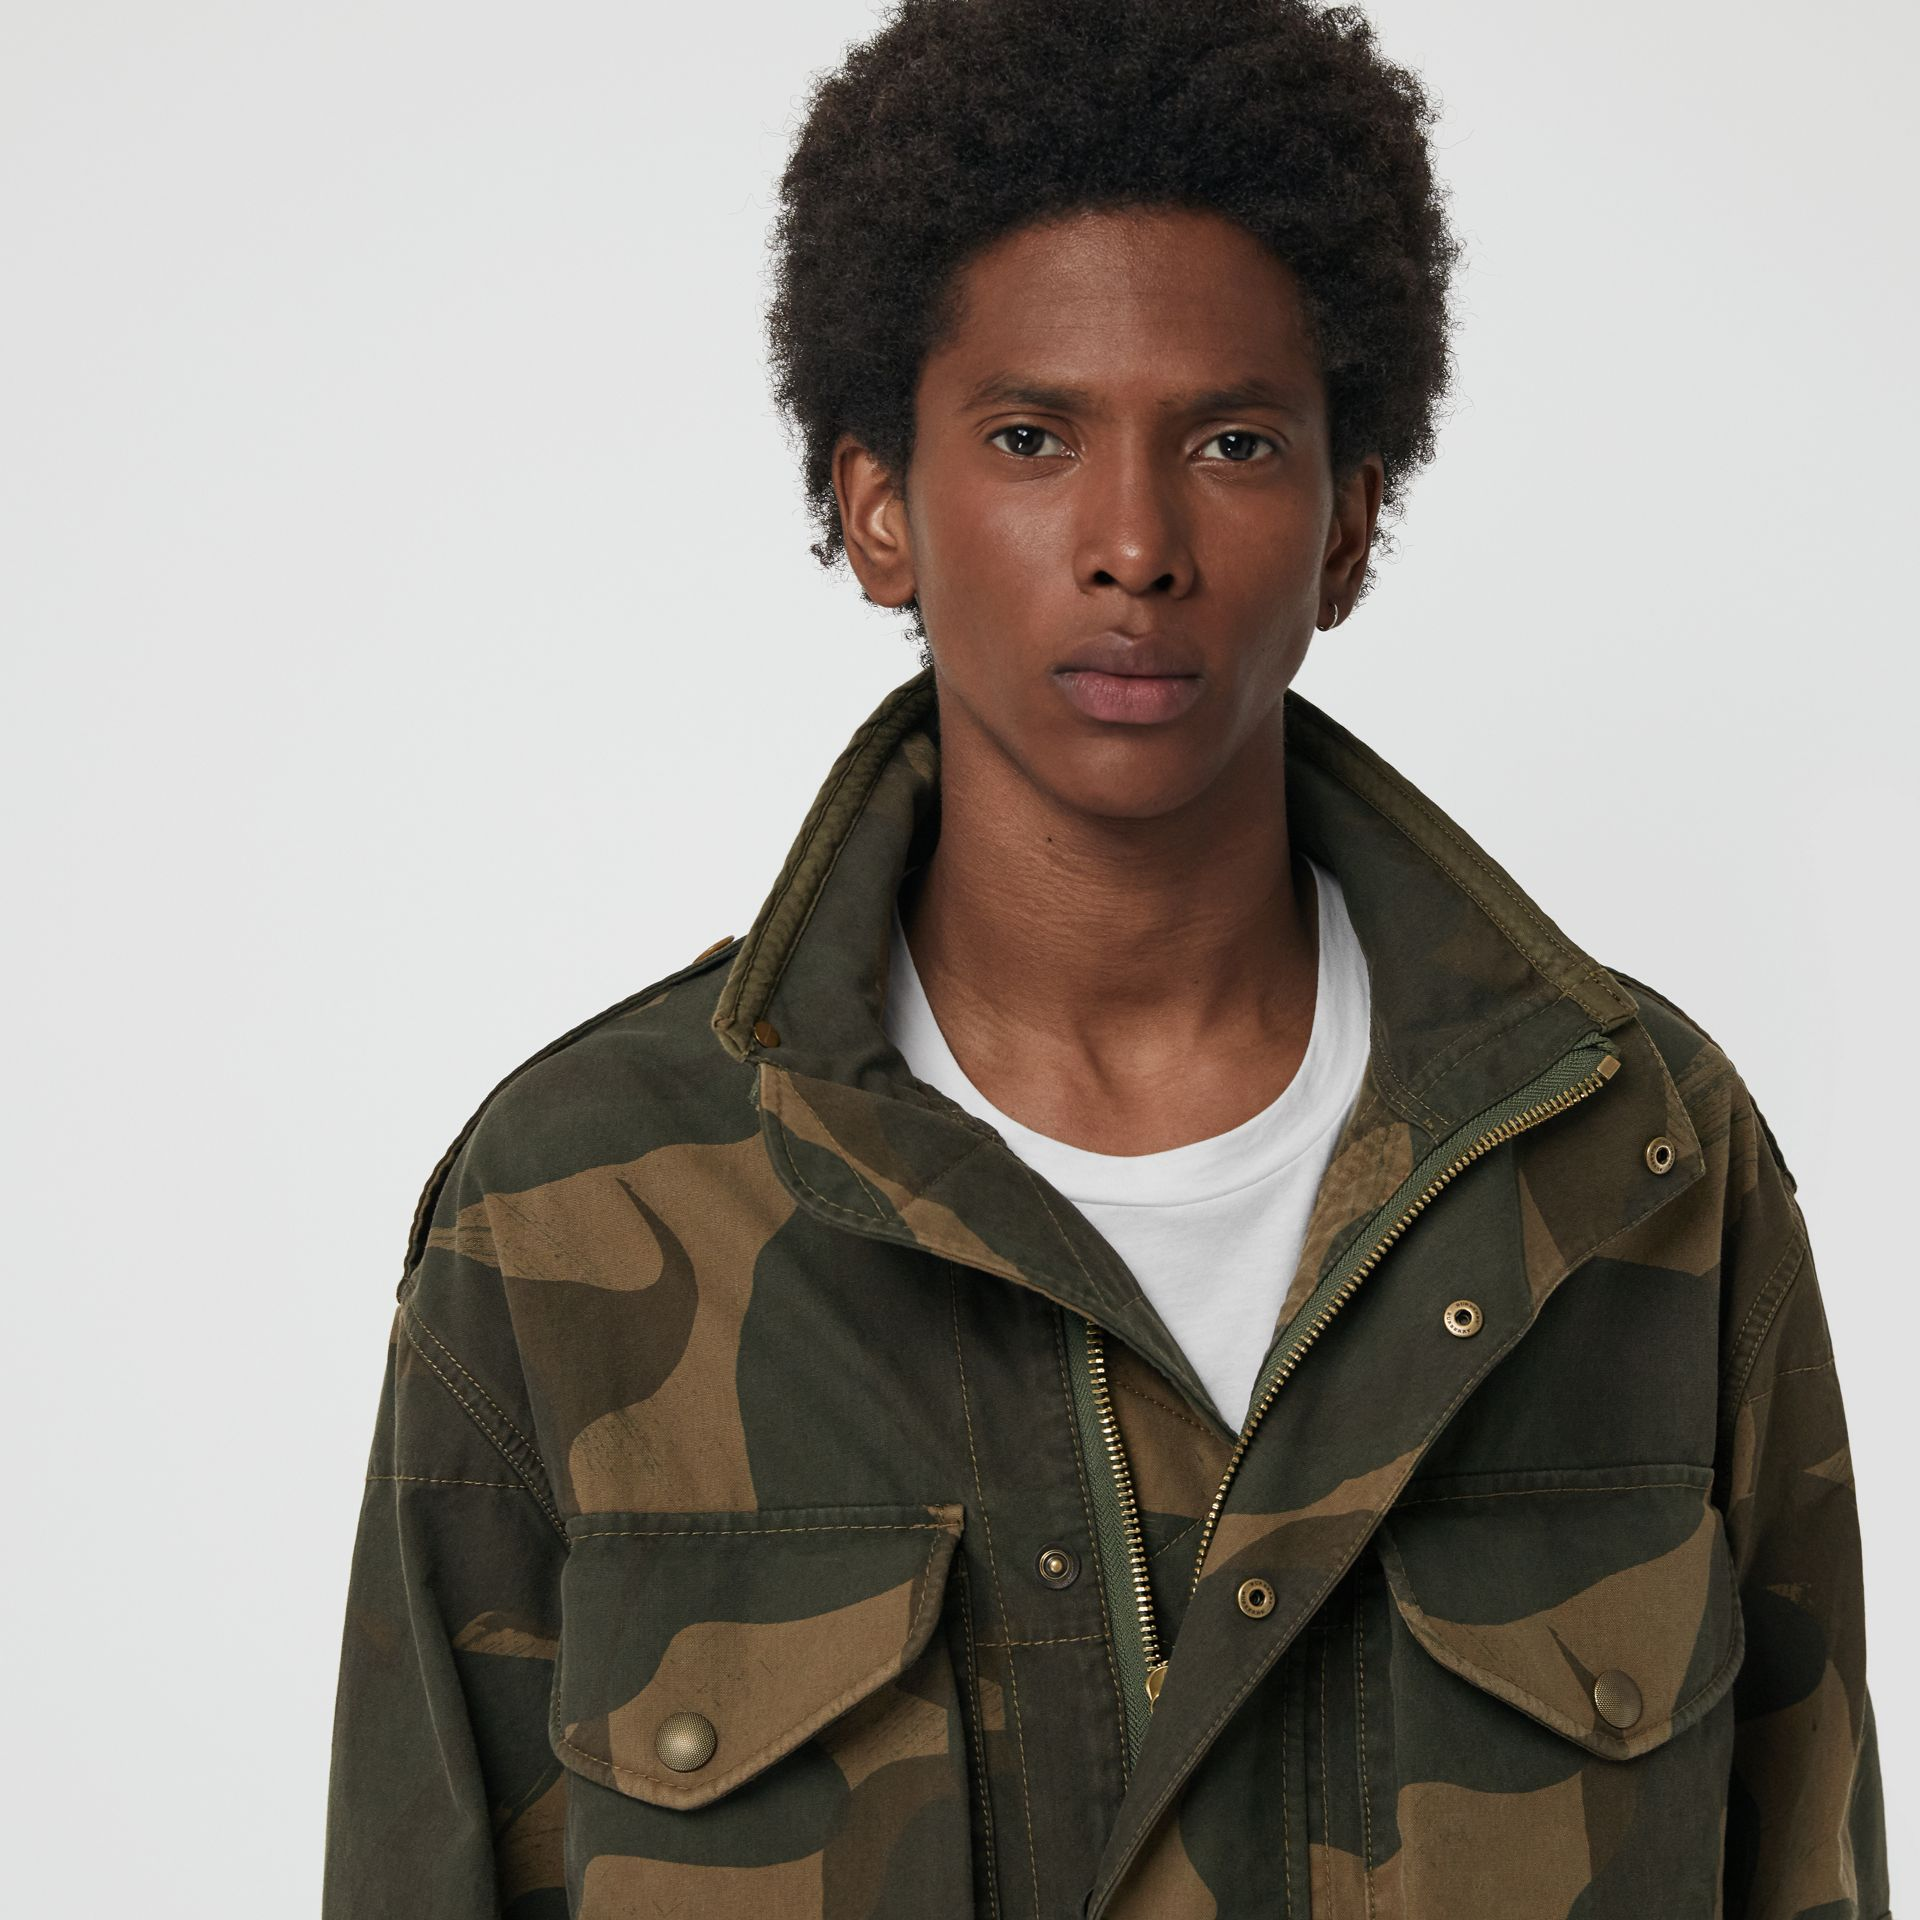 Camouflage Print Cotton Canvas Field Jacket in Khaki - Men | Burberry Canada - gallery image 1